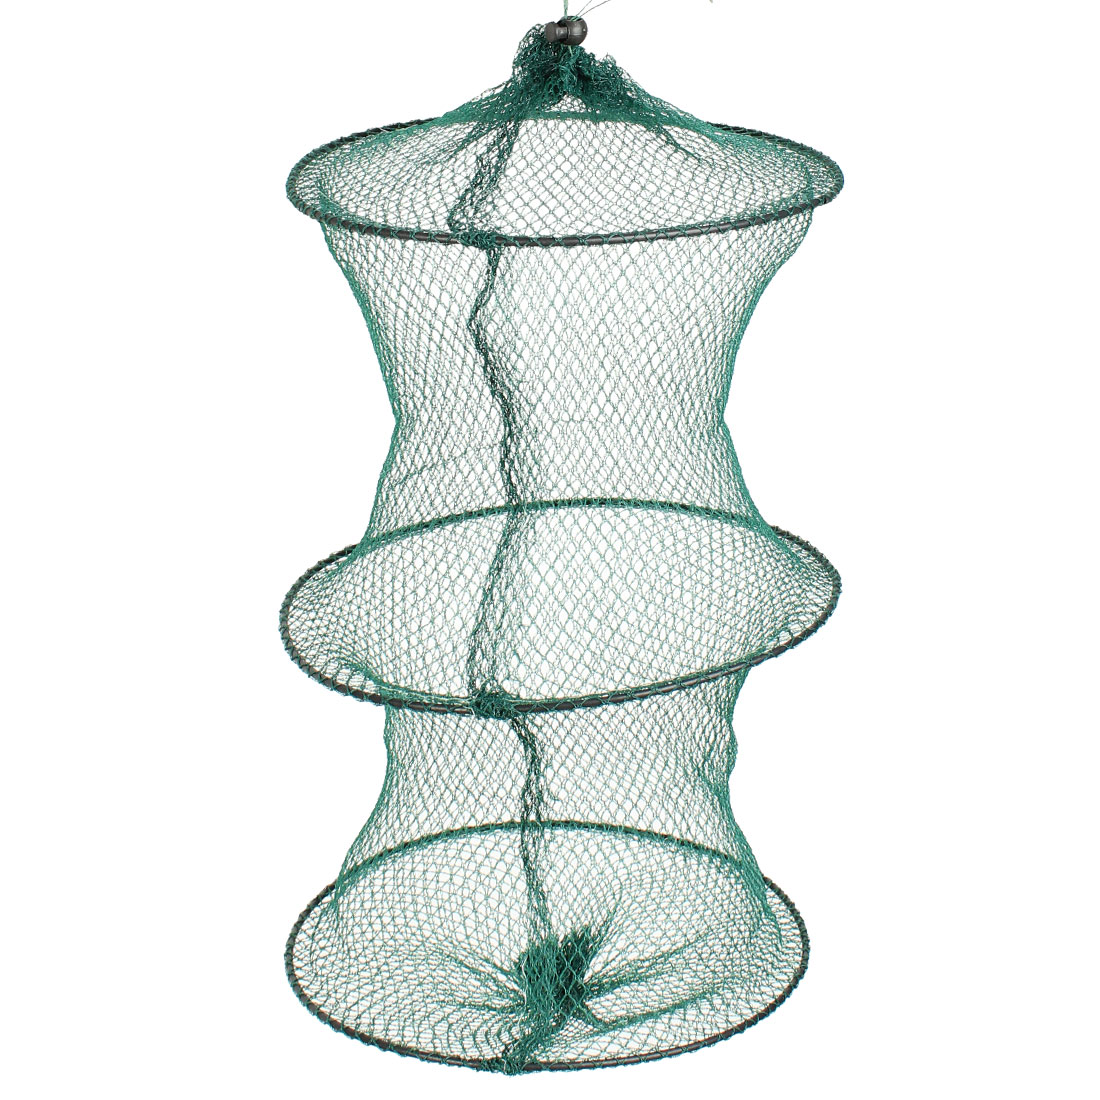 Crab Shrimp Crawfish Keep Fishing Net Tool 25cm Dia 2 Section Green